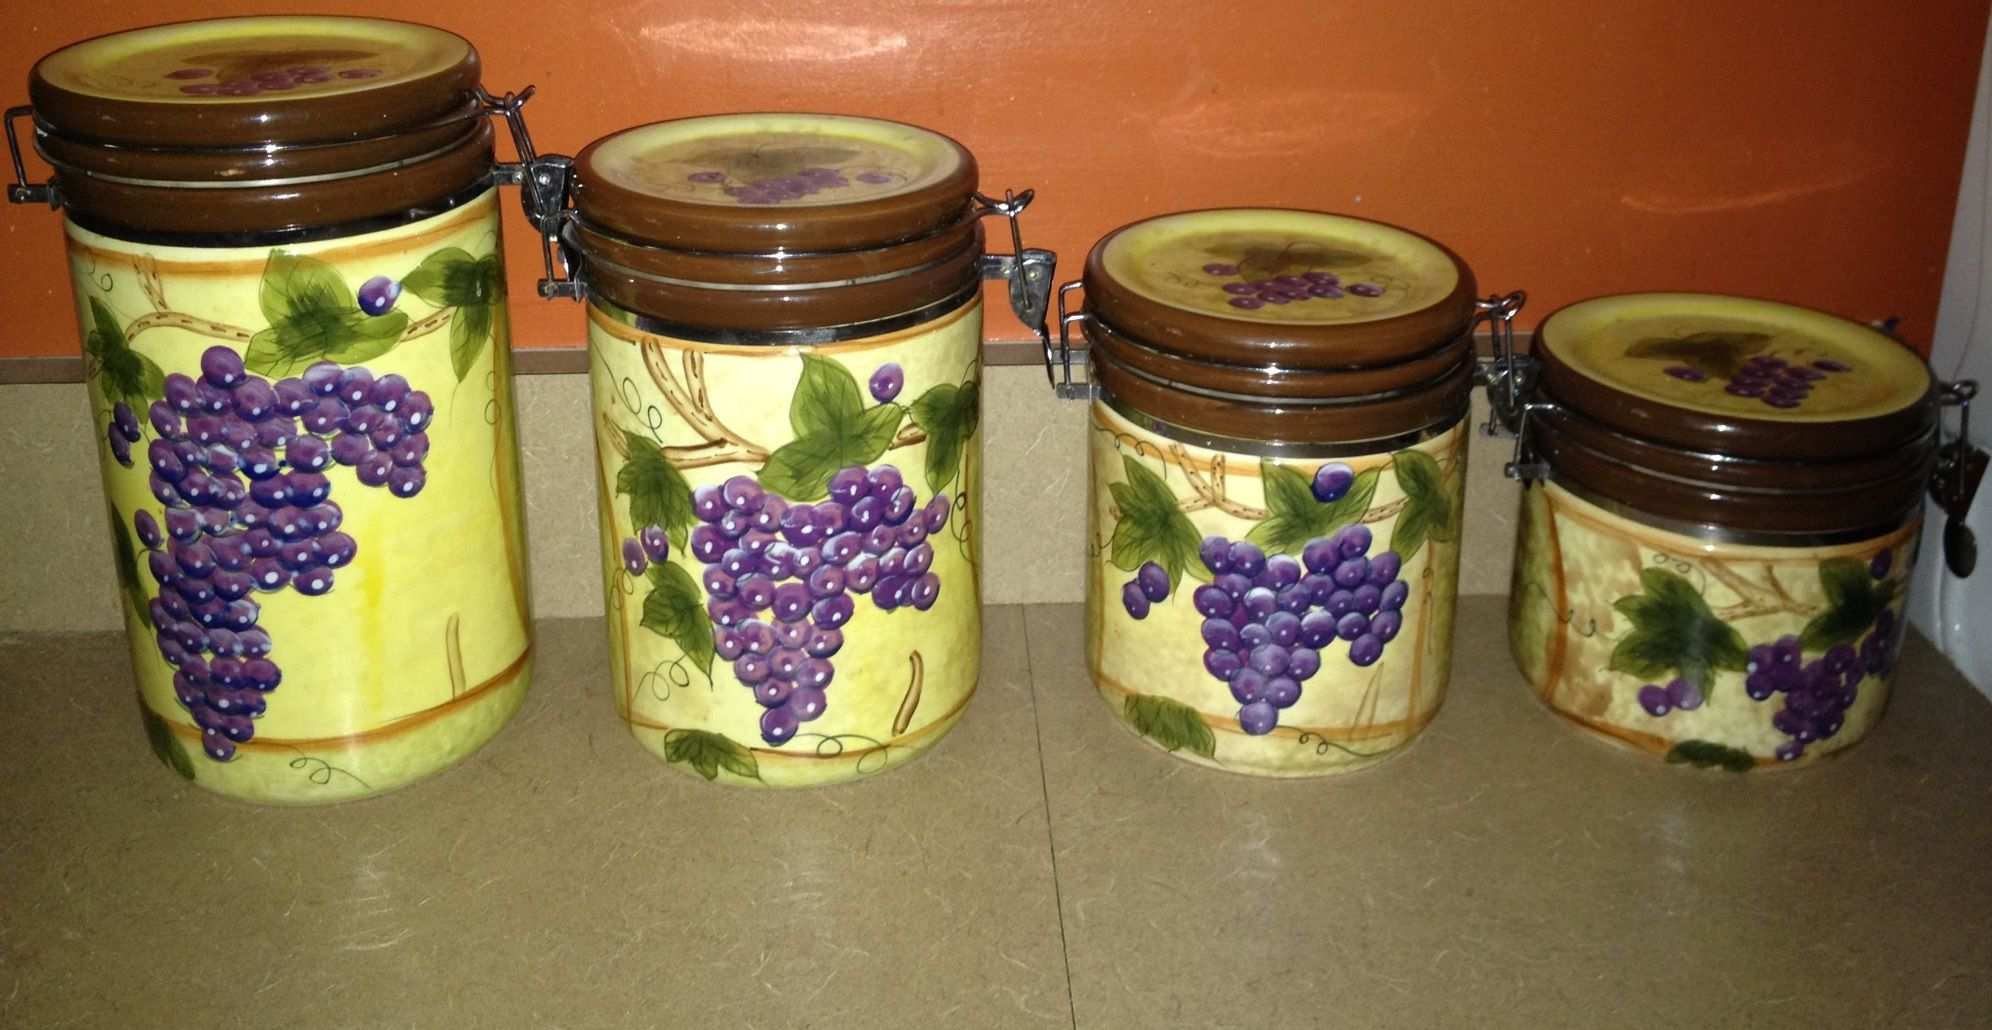 tuscan kitchen canisters under sink mat tuscany decor from kirkland 39s